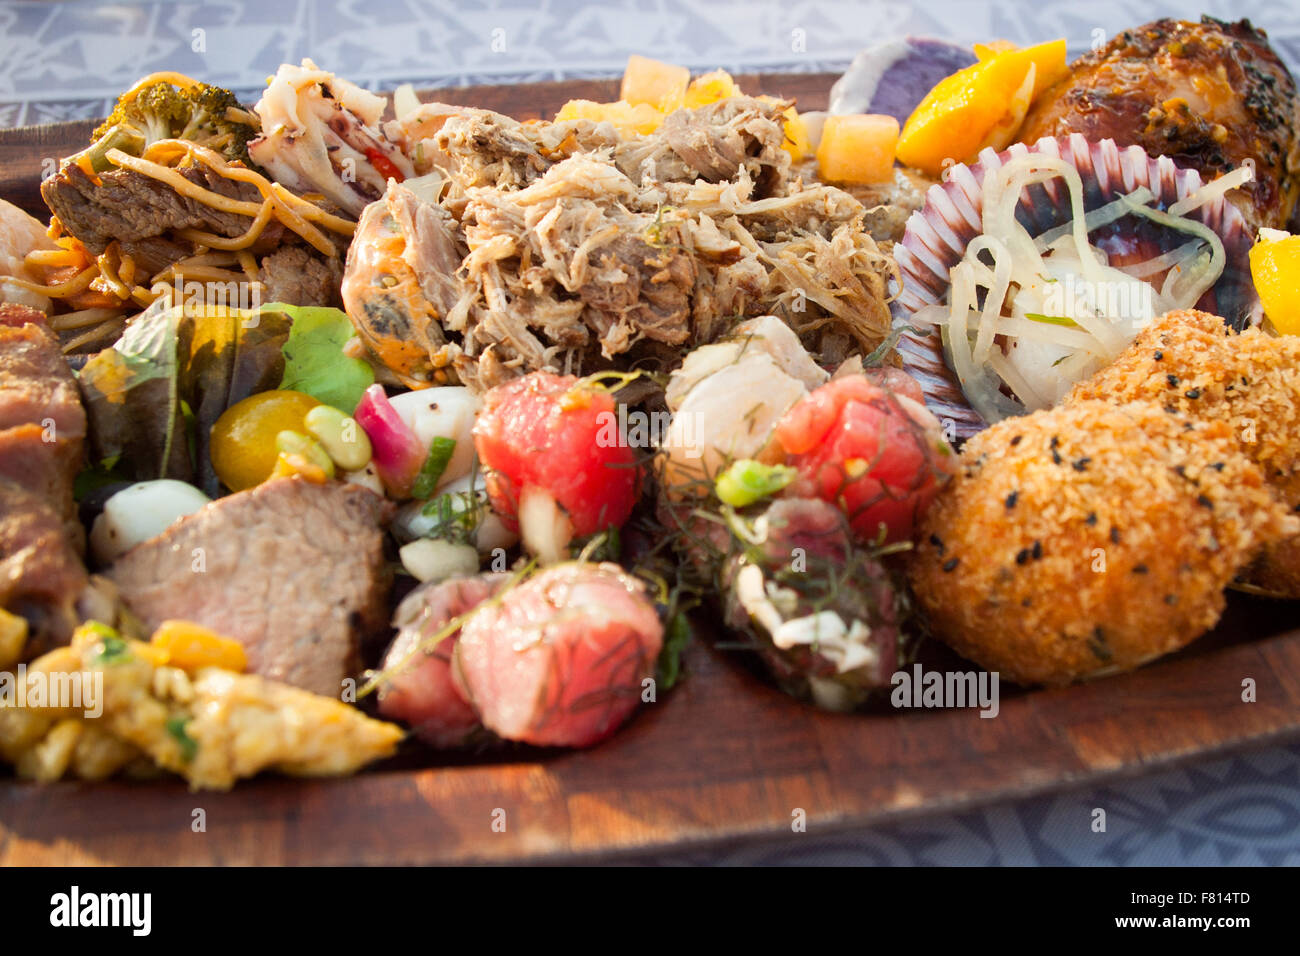 Delicious food from the Polynesian buffet at the Gathering of Kings Hawaiian lu'au. Fairmont Orchid, Kohala - Stock Image